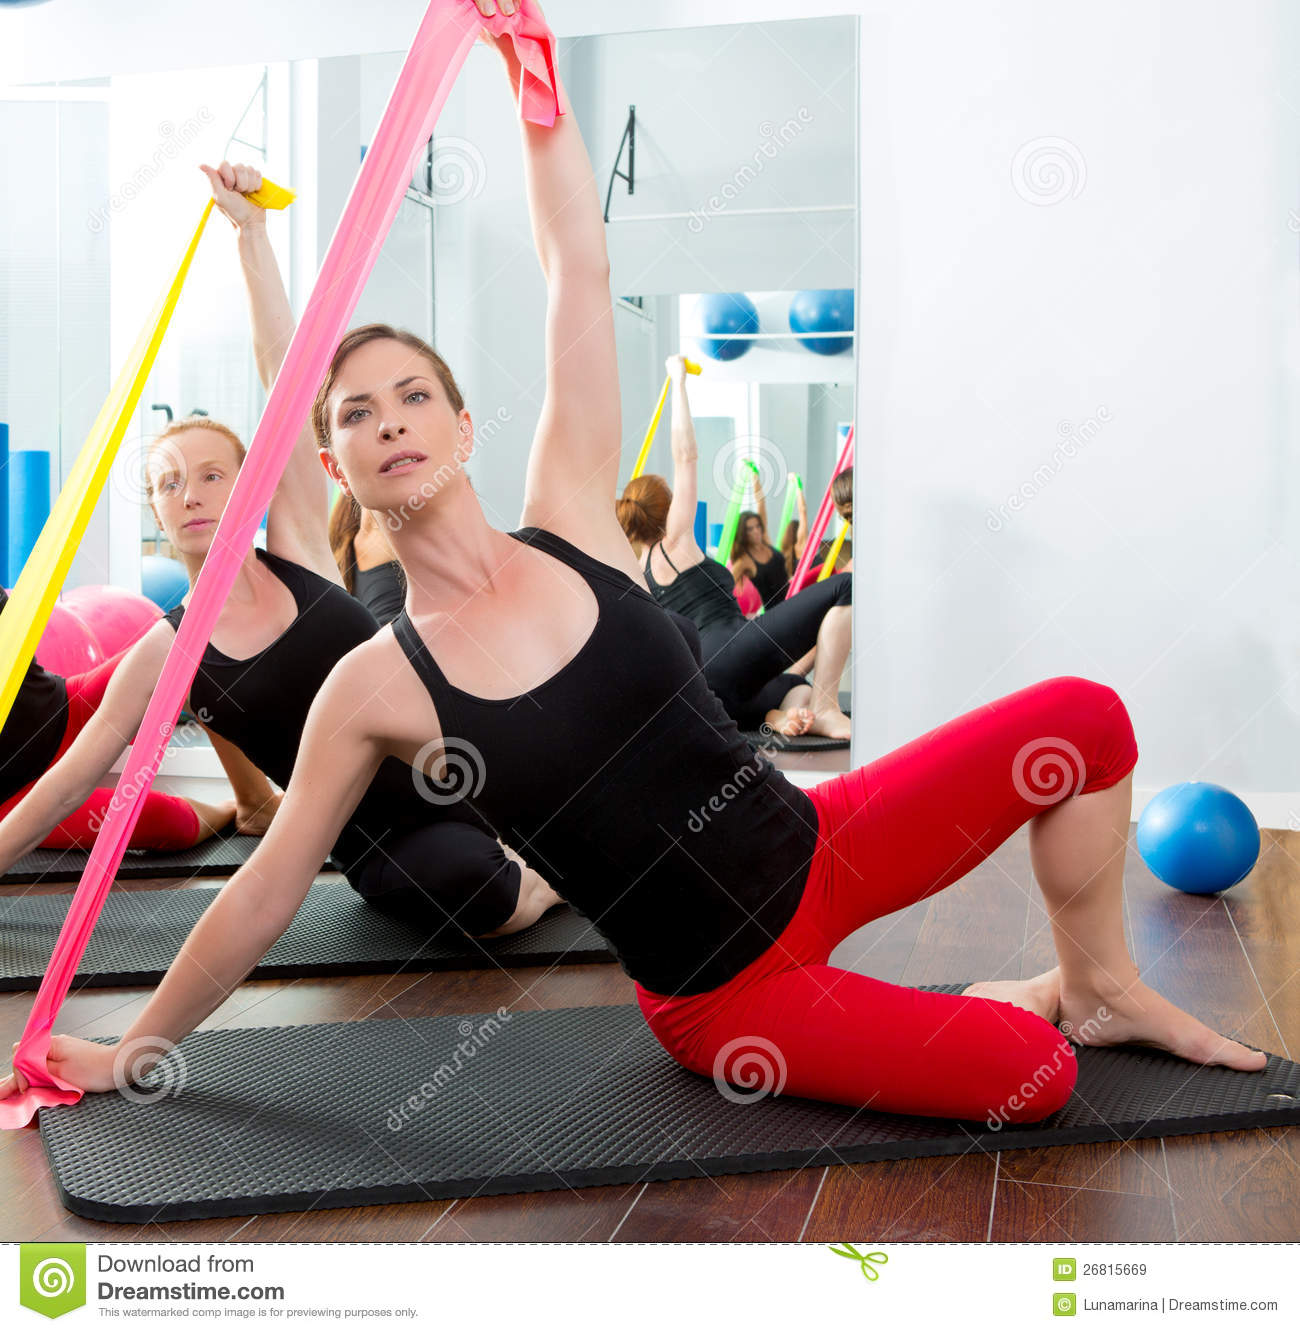 Woman Pilates Chair Exercises Fitness Stock Photo: Aerobics Pilates Women With Rubber Bands In A Row Royalty